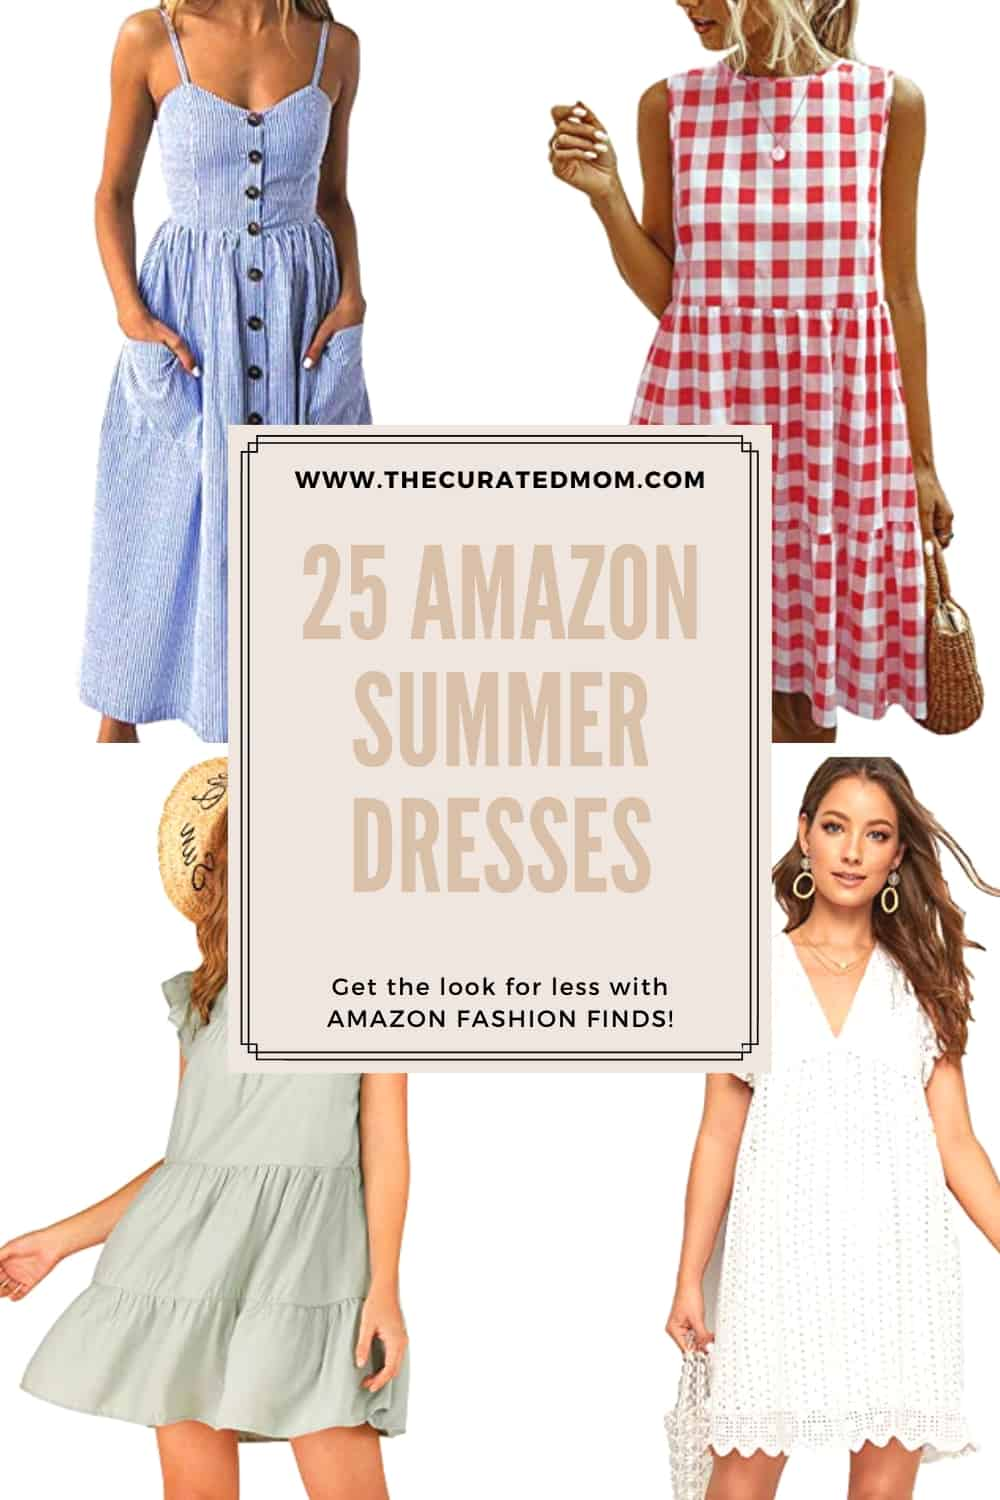 four different women's summer dresses with text reading 25 amazon summer dresses get the look for less with amazon fashion finds